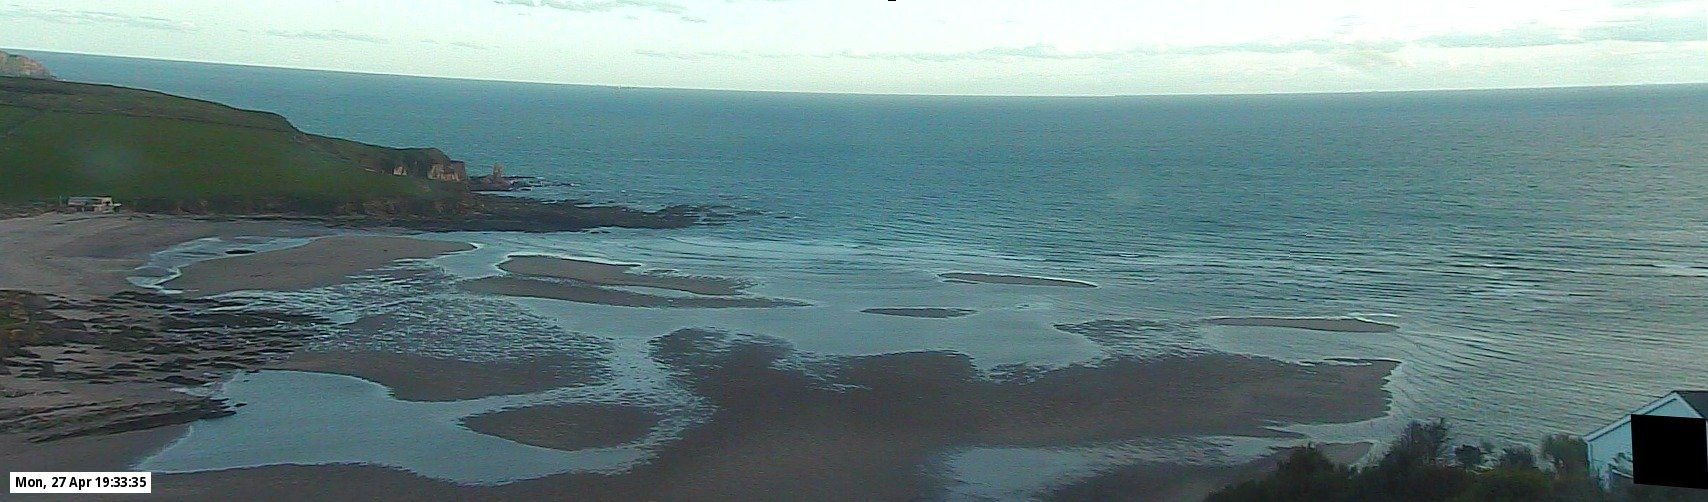 Latest webcam still for Bantham